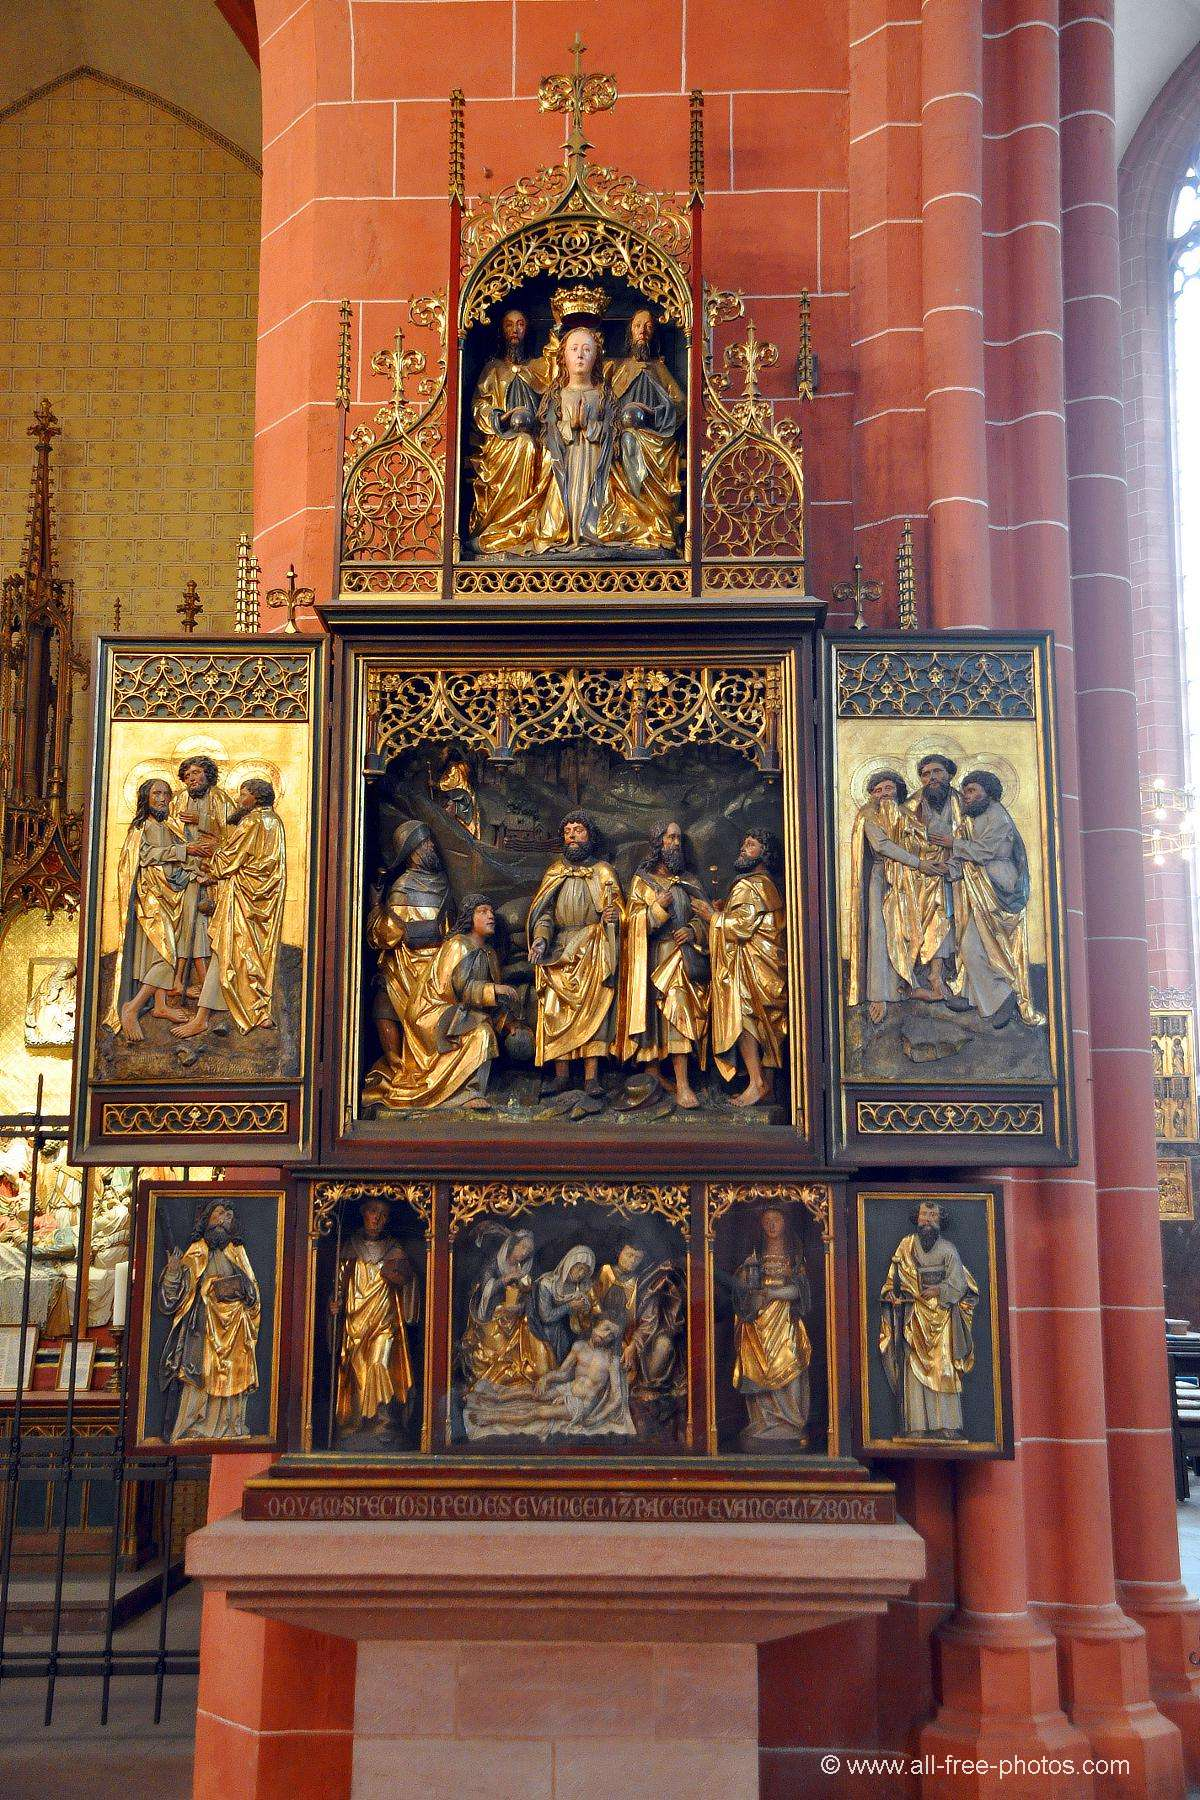 Triptych -Saint Bartholomeus's Cathedral - Frankfurt on the Main - Germany